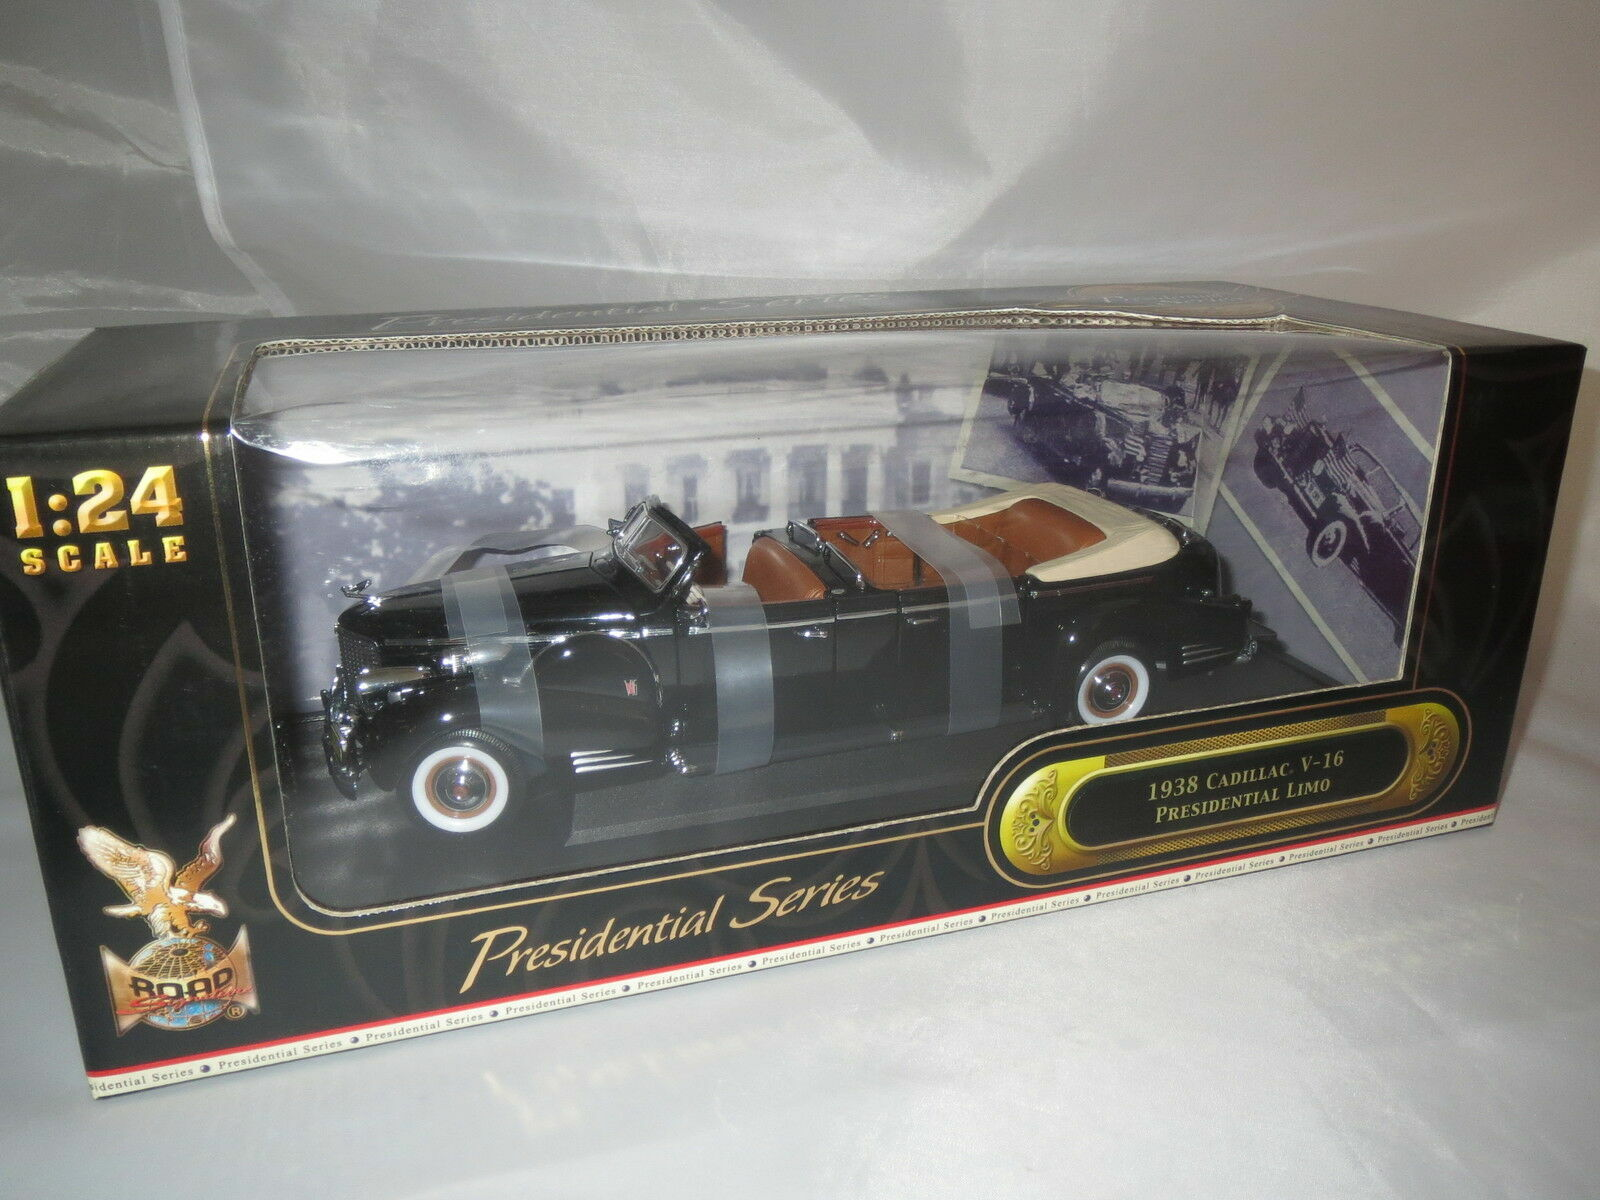 CADILLAC V-16 PRESIDENTIAL LIMO 1938 ROAD SIGNATURE SIGNATURE SIGNATURE 1 24 NEW IN BOX 9dc6a6